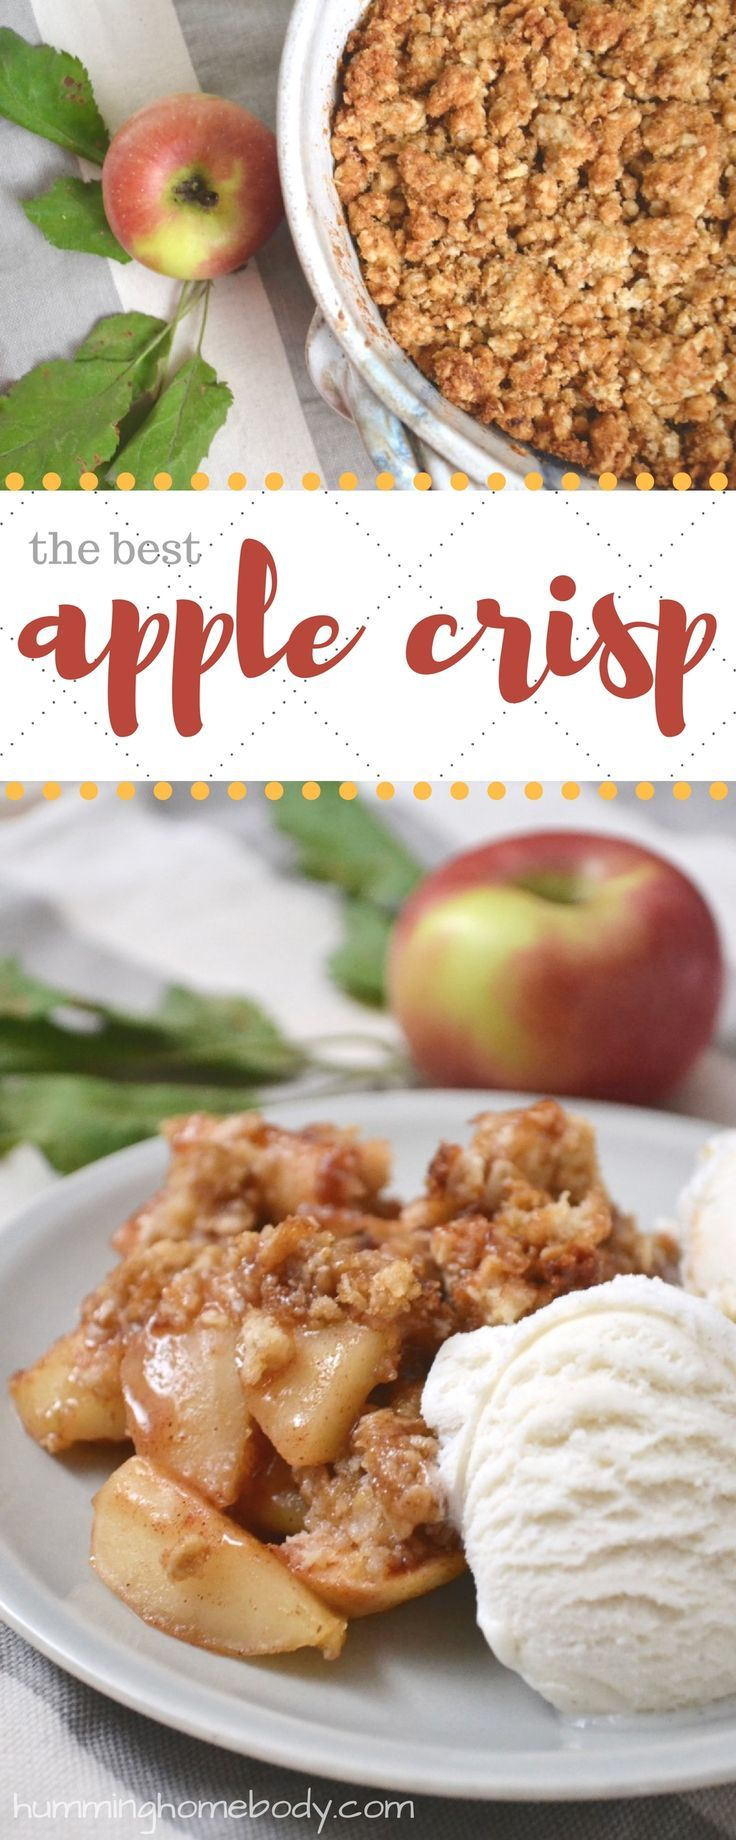 The topping on this apple crisp is packed with buttery, sugary, crumbly goodness. Apple crisp is the perfect fall dessert. Recipe includes modifications for different types of apples. #fallfoods